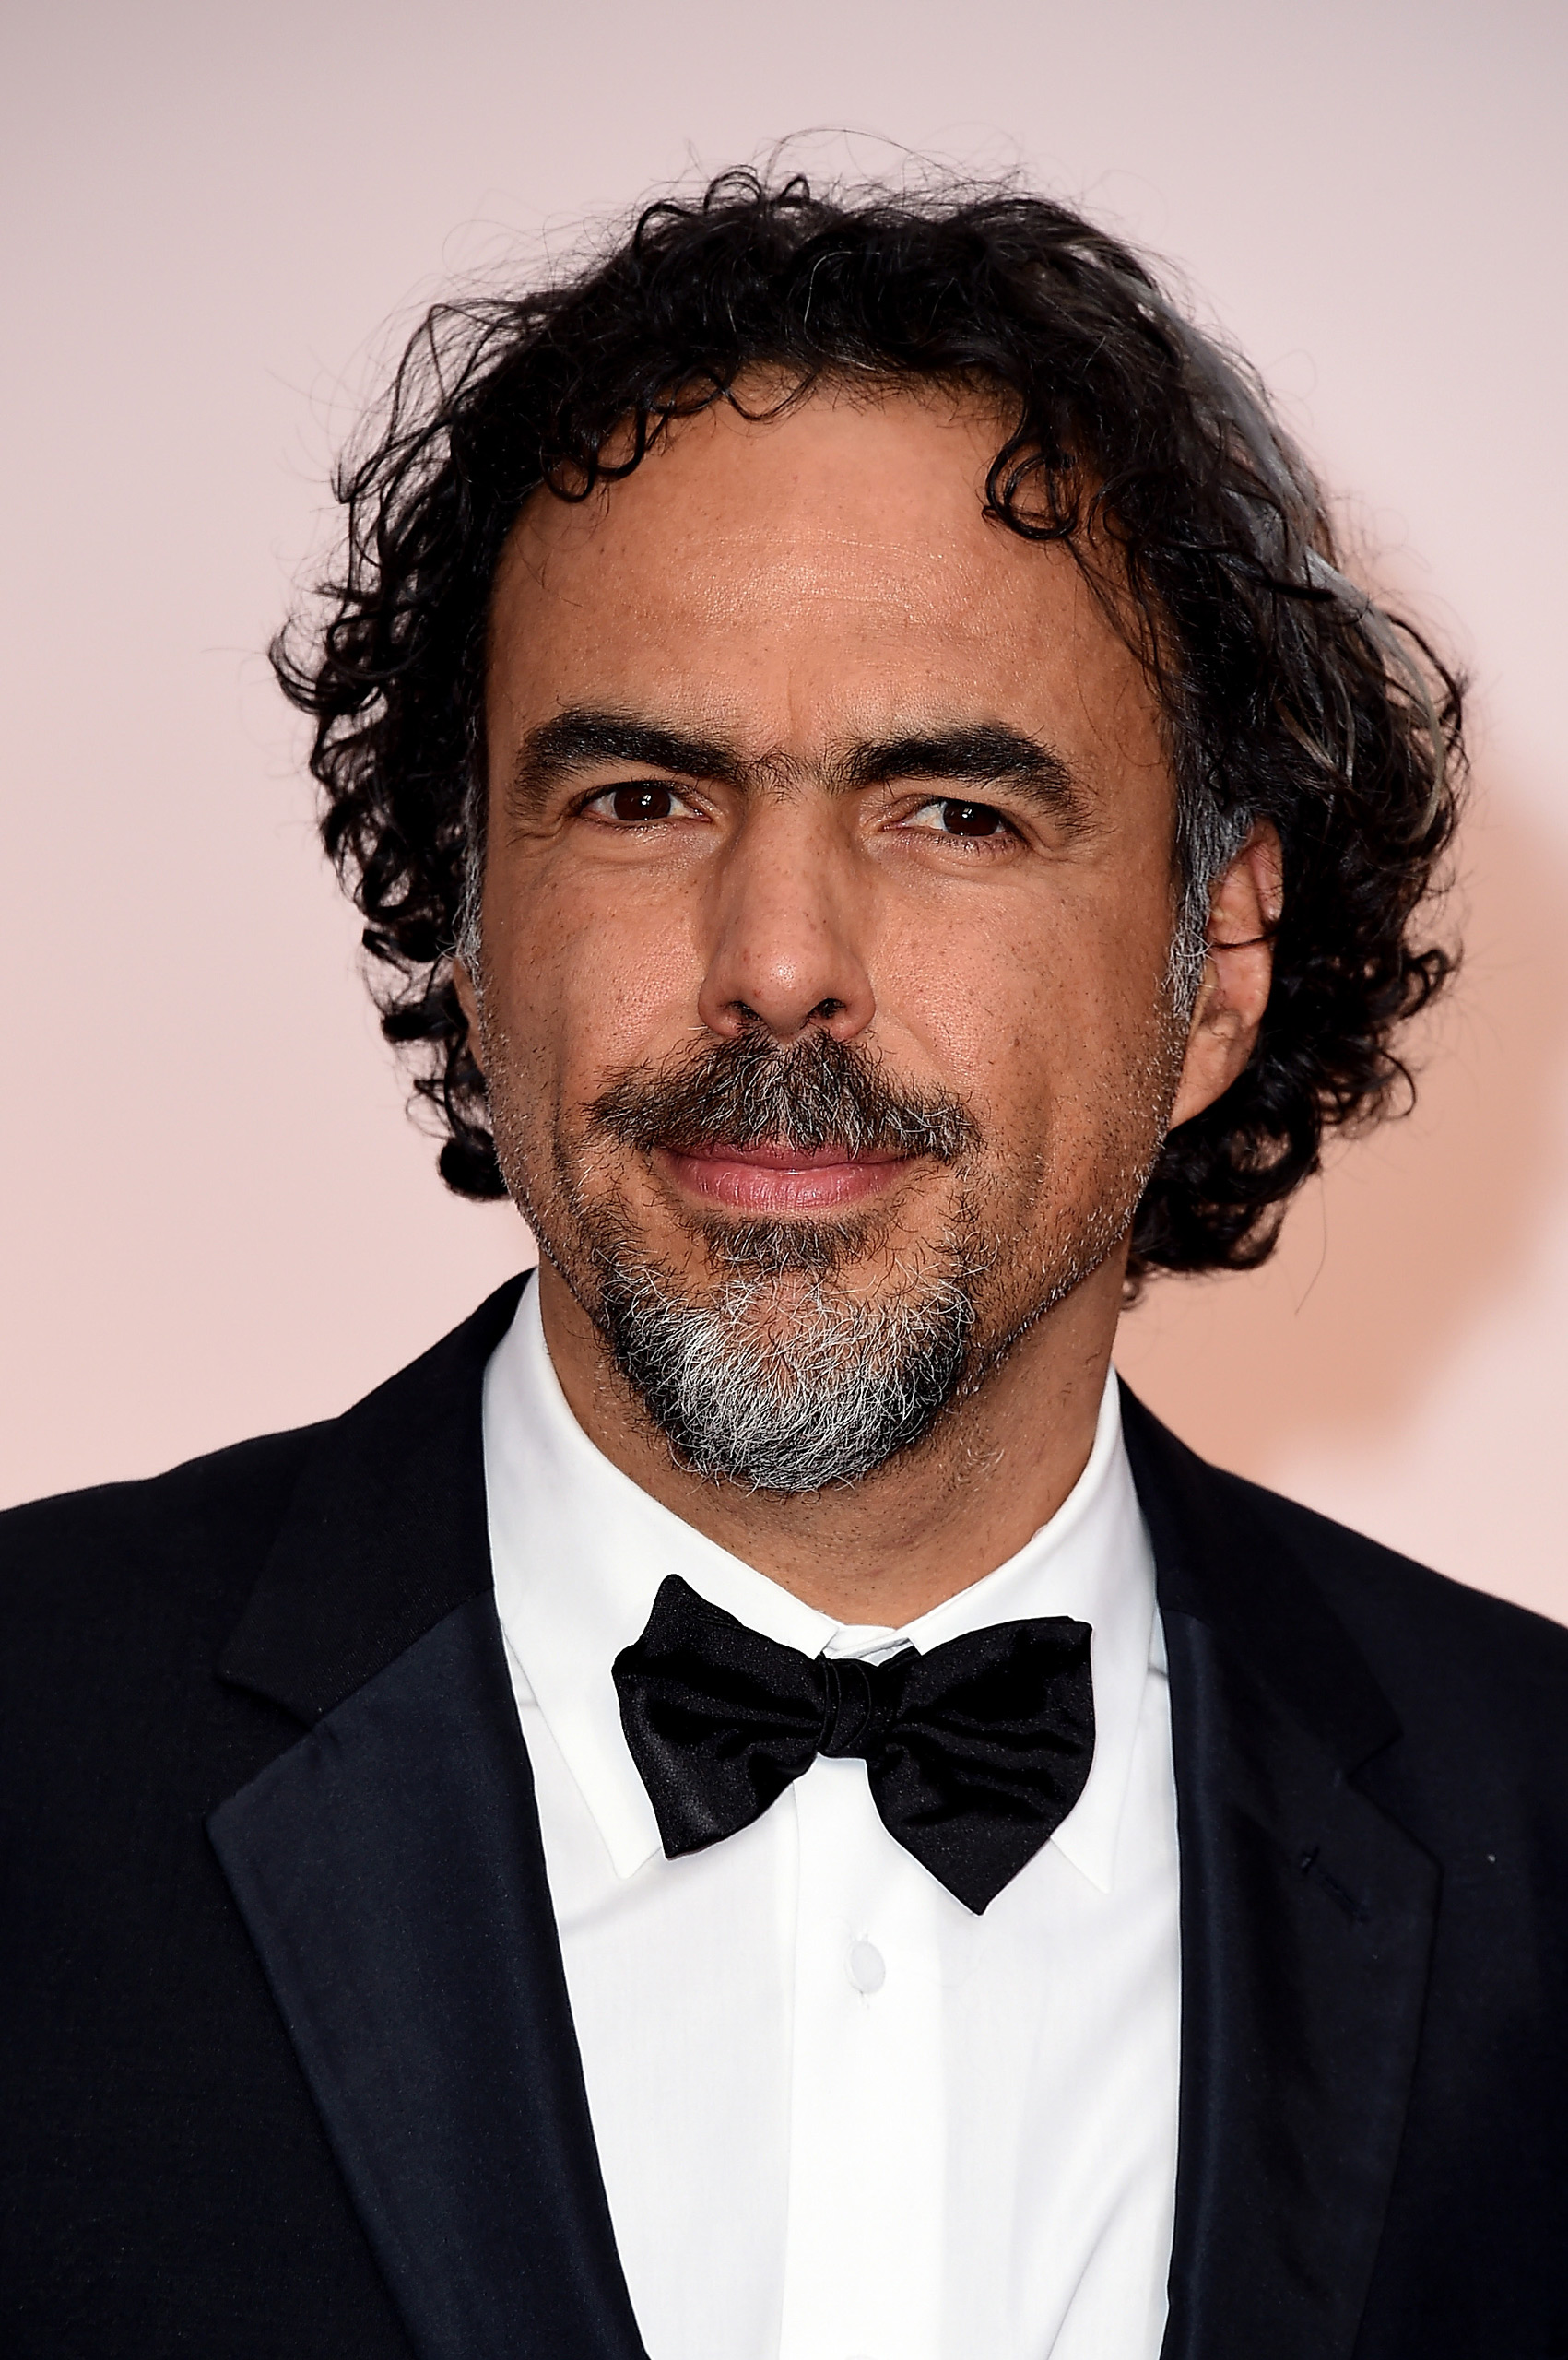 Alejandro G. Inarritu attends the 87th Annual Academy Awards on Feb. 22, 2015 in Hollywood, Calif.